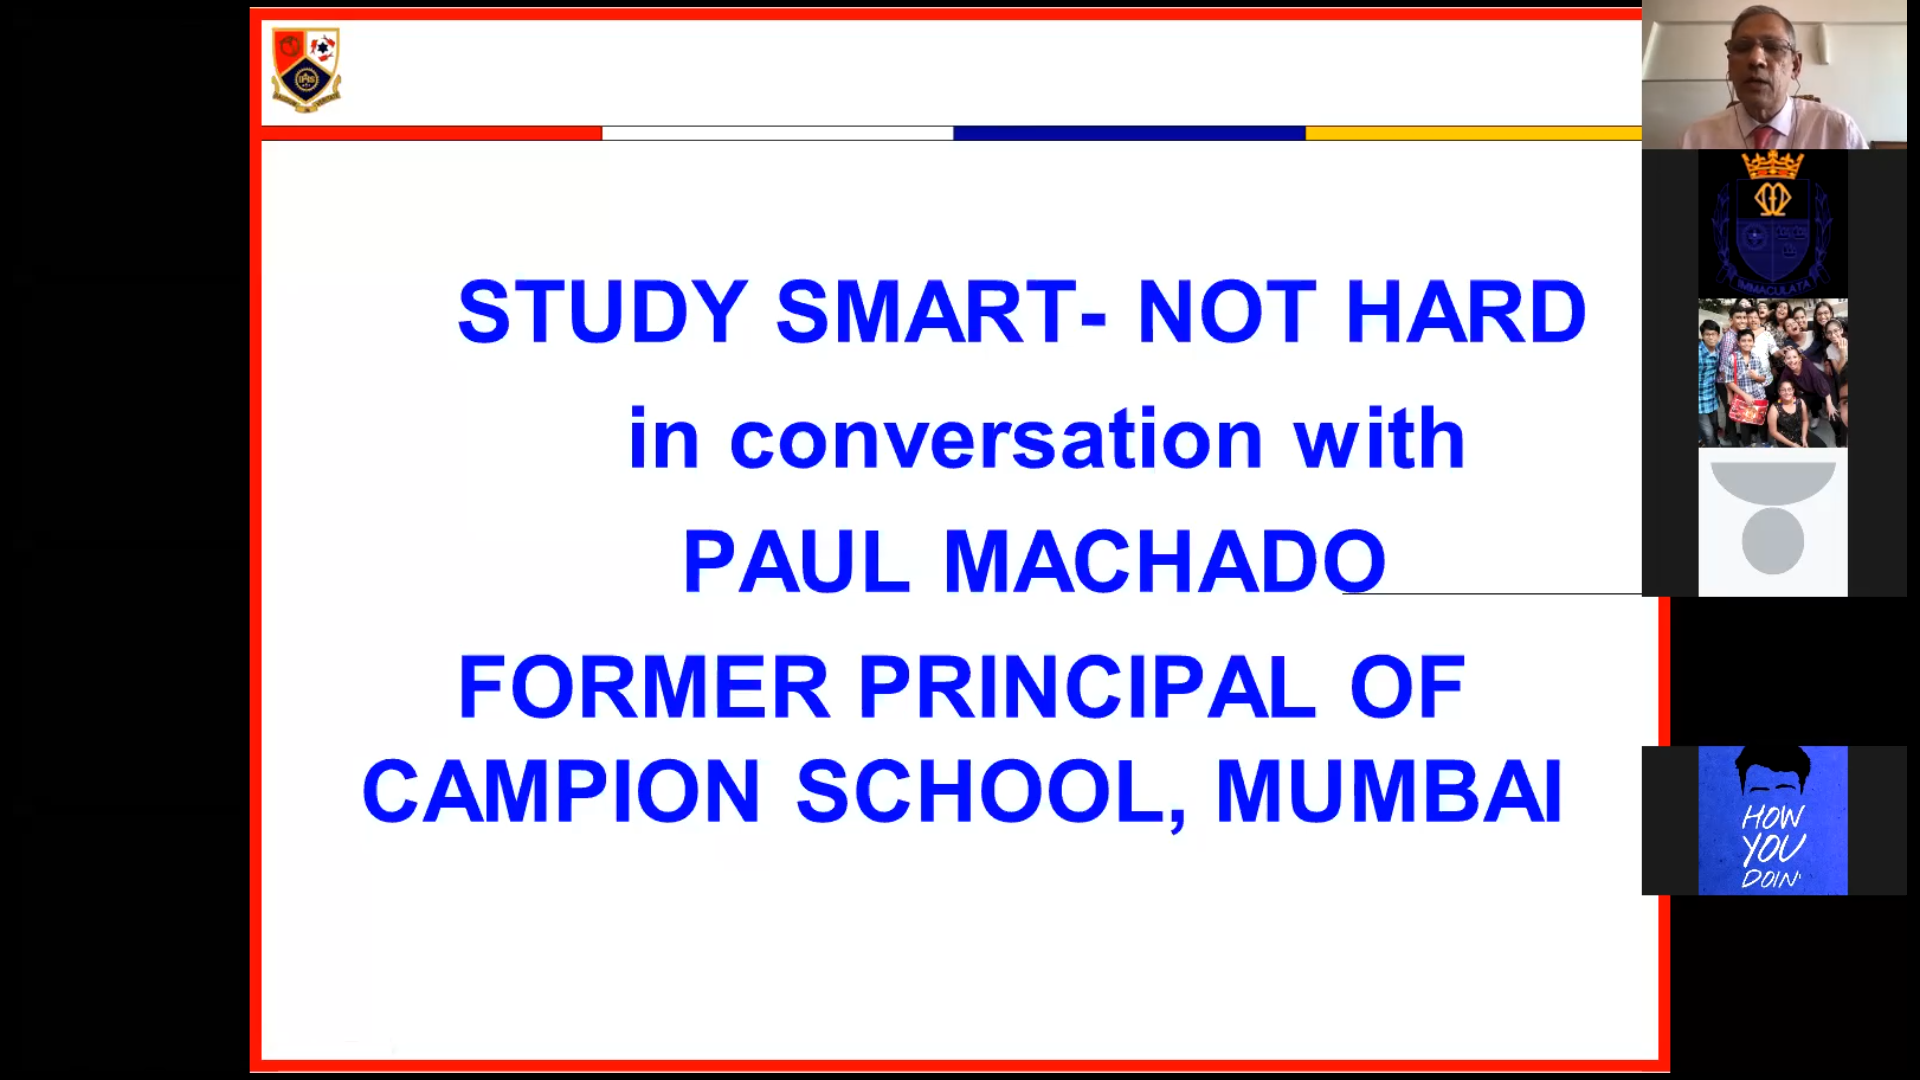 Orientation talk given by Mr. Paul Machado former principal of Campion School.